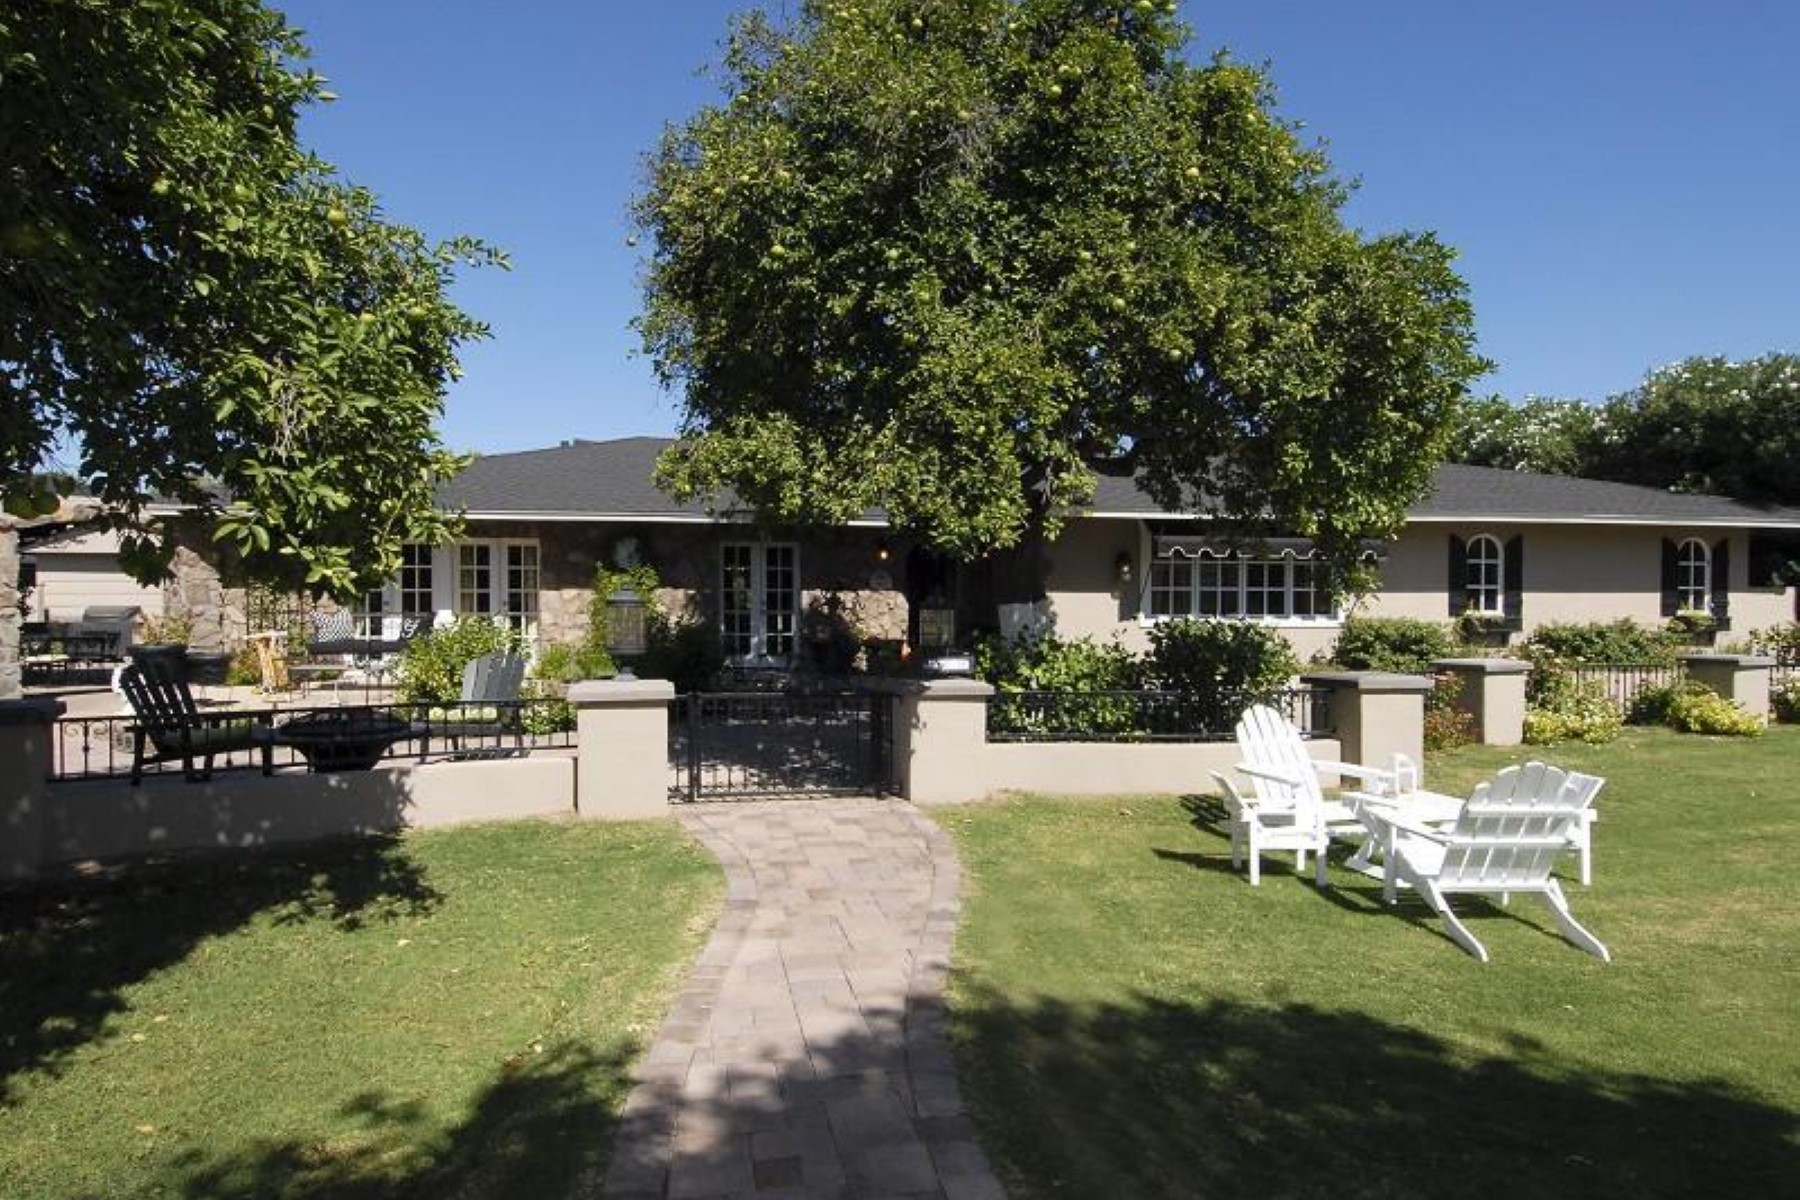 단독 가정 주택 용 매매 에 Charming home sits on a 25,000 sq ft lot in the middle of Arcadia 5424 E Lafayette Blvd Phoenix, 아리조나, 85018 미국